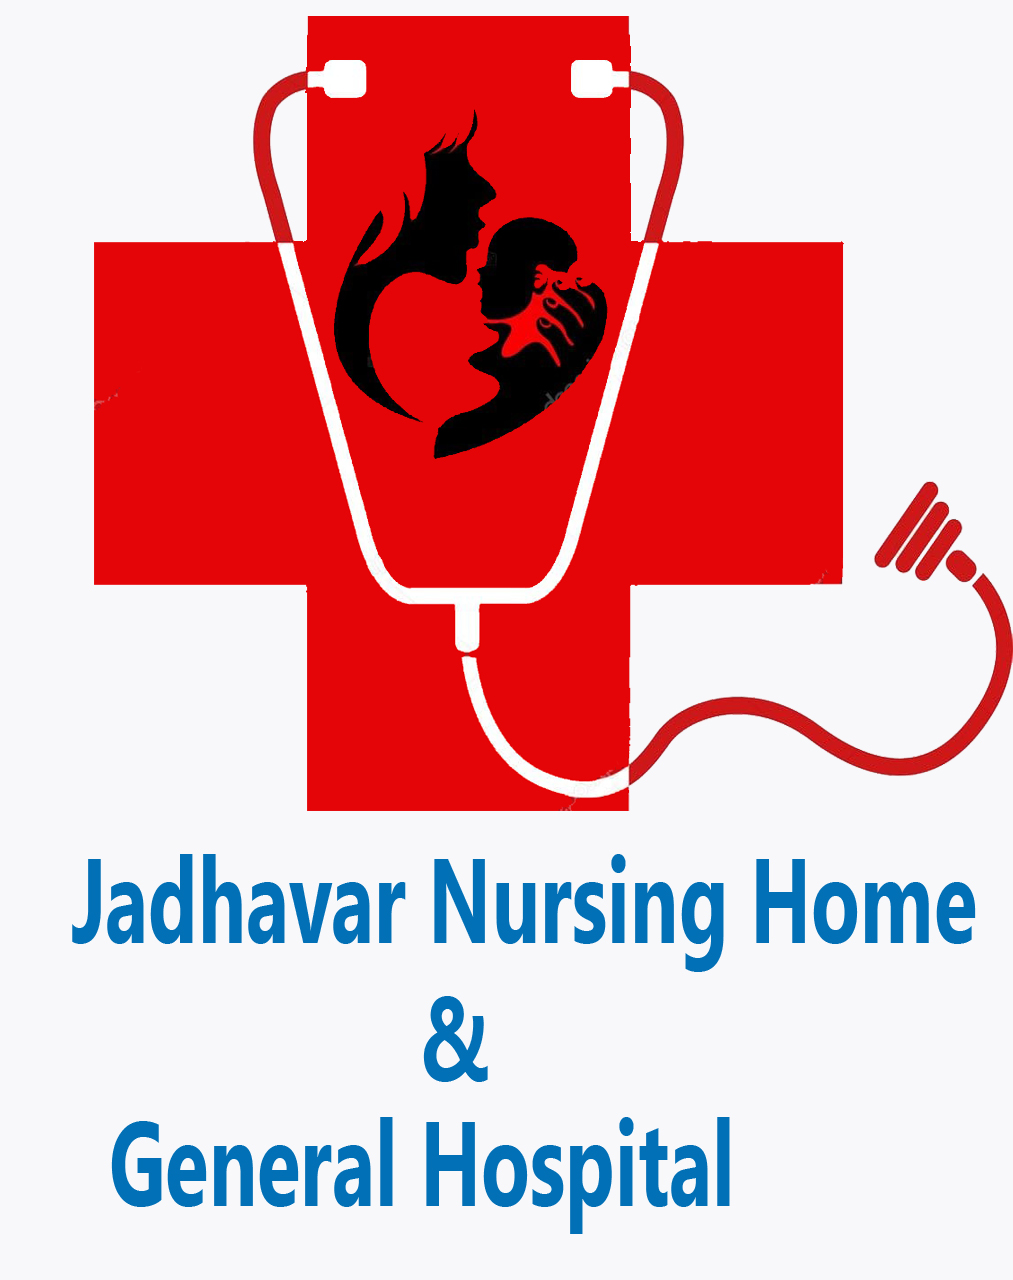 JADHAVAR NURSING HOME & GENERAL HOSPITAL